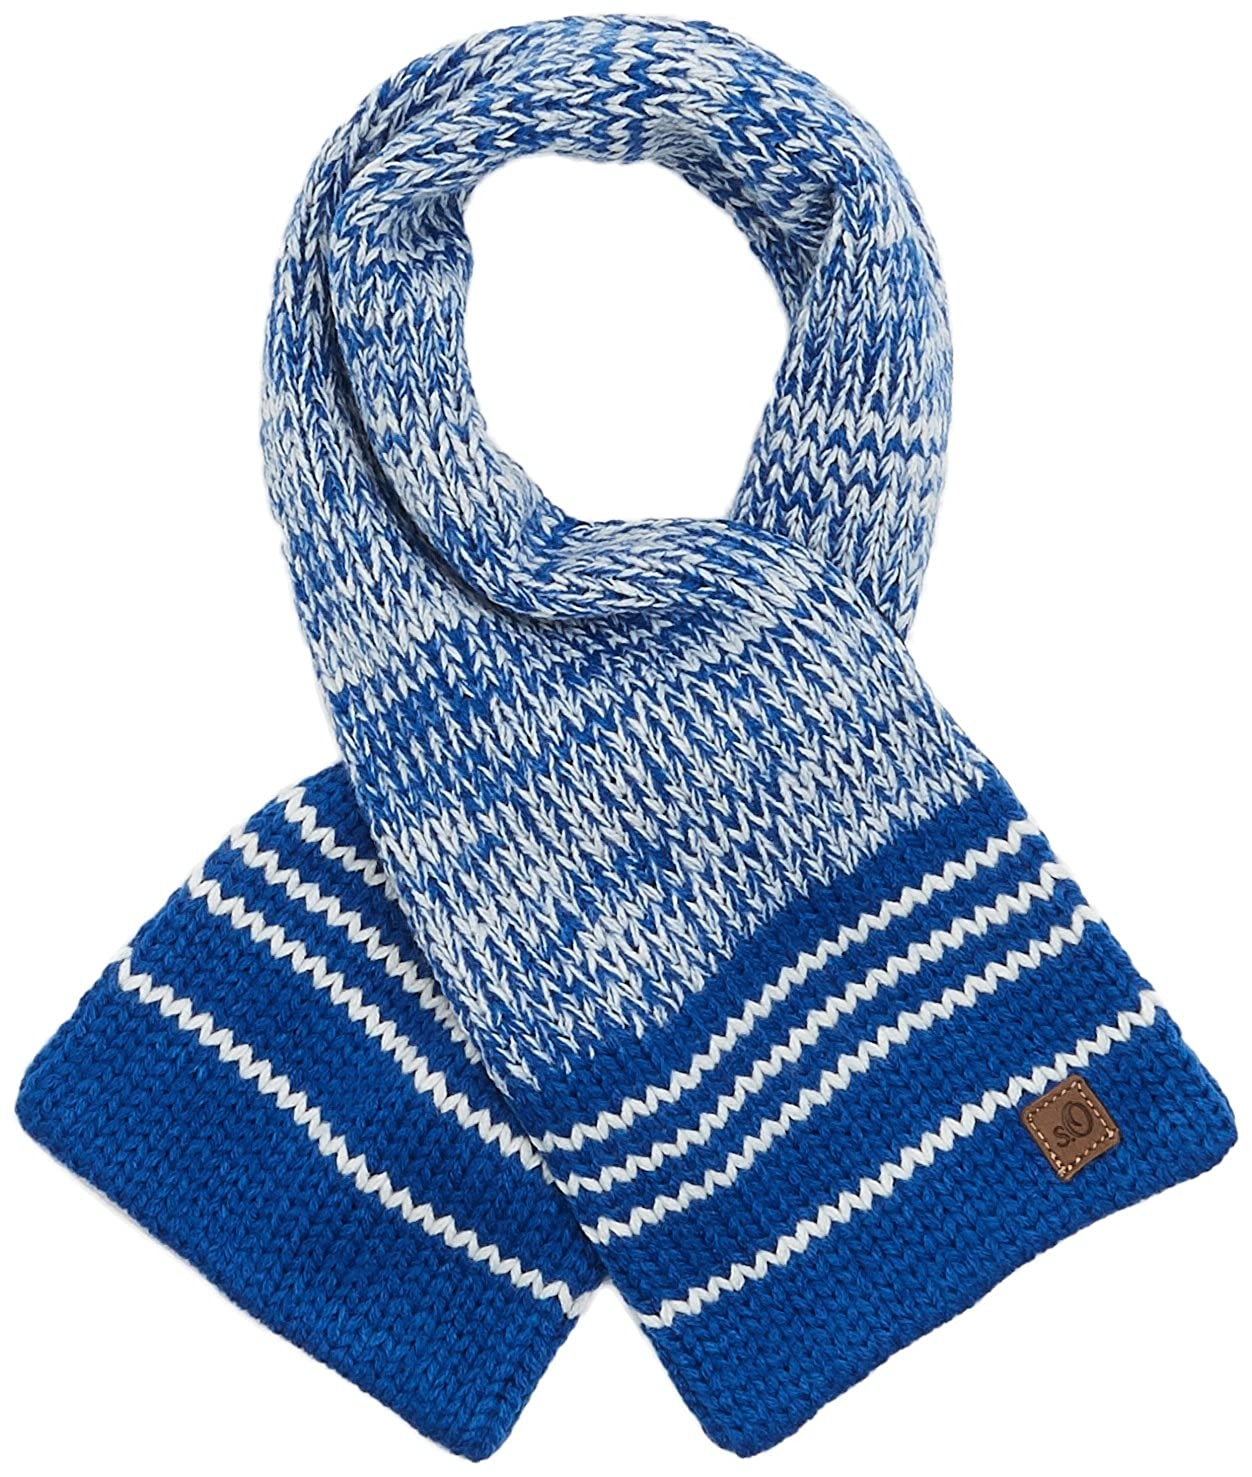 s.Oliver Baby Boys' 59.710.91.2781 Scarf, Blau (Dark Blue Stripes 58S4), One Size